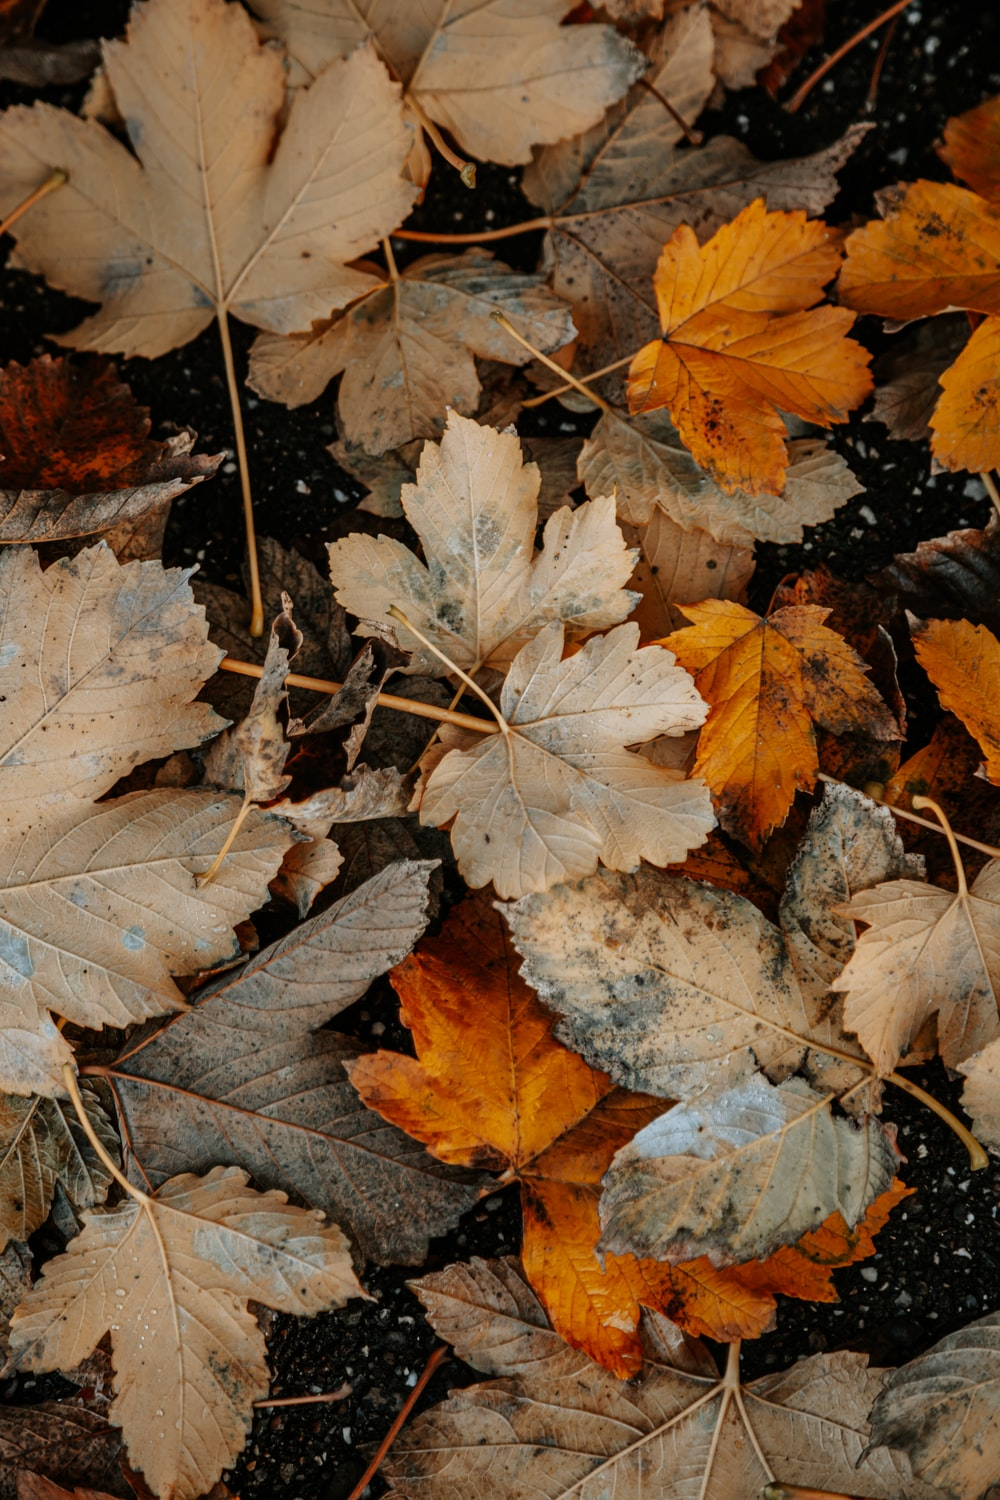 brown and gray leaves on ground